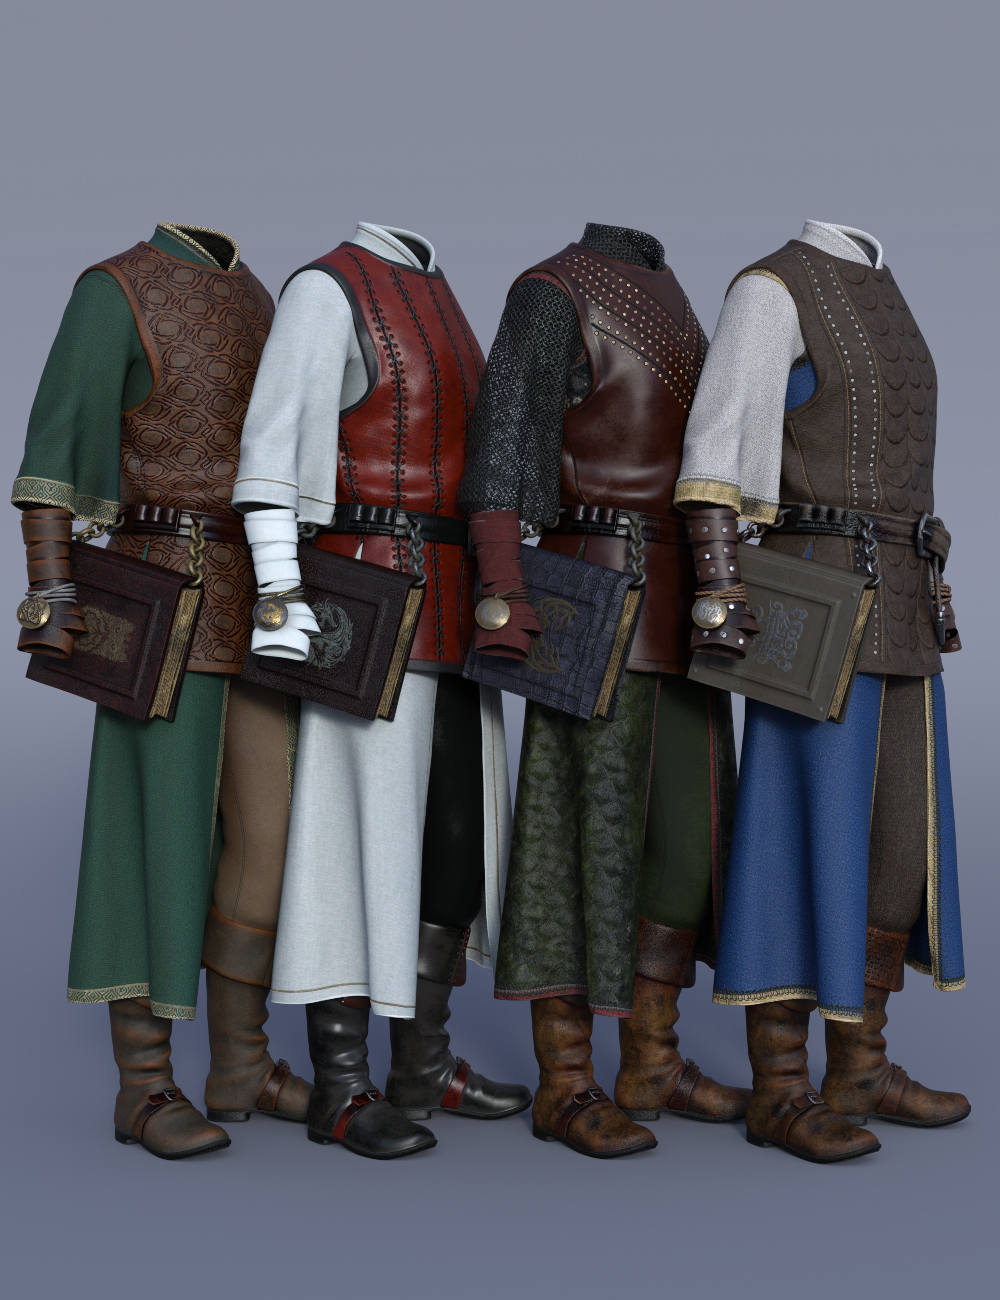 dForce Cleric Outfit Textures by: Moonscape GraphicsSade, 3D Models by Daz 3D